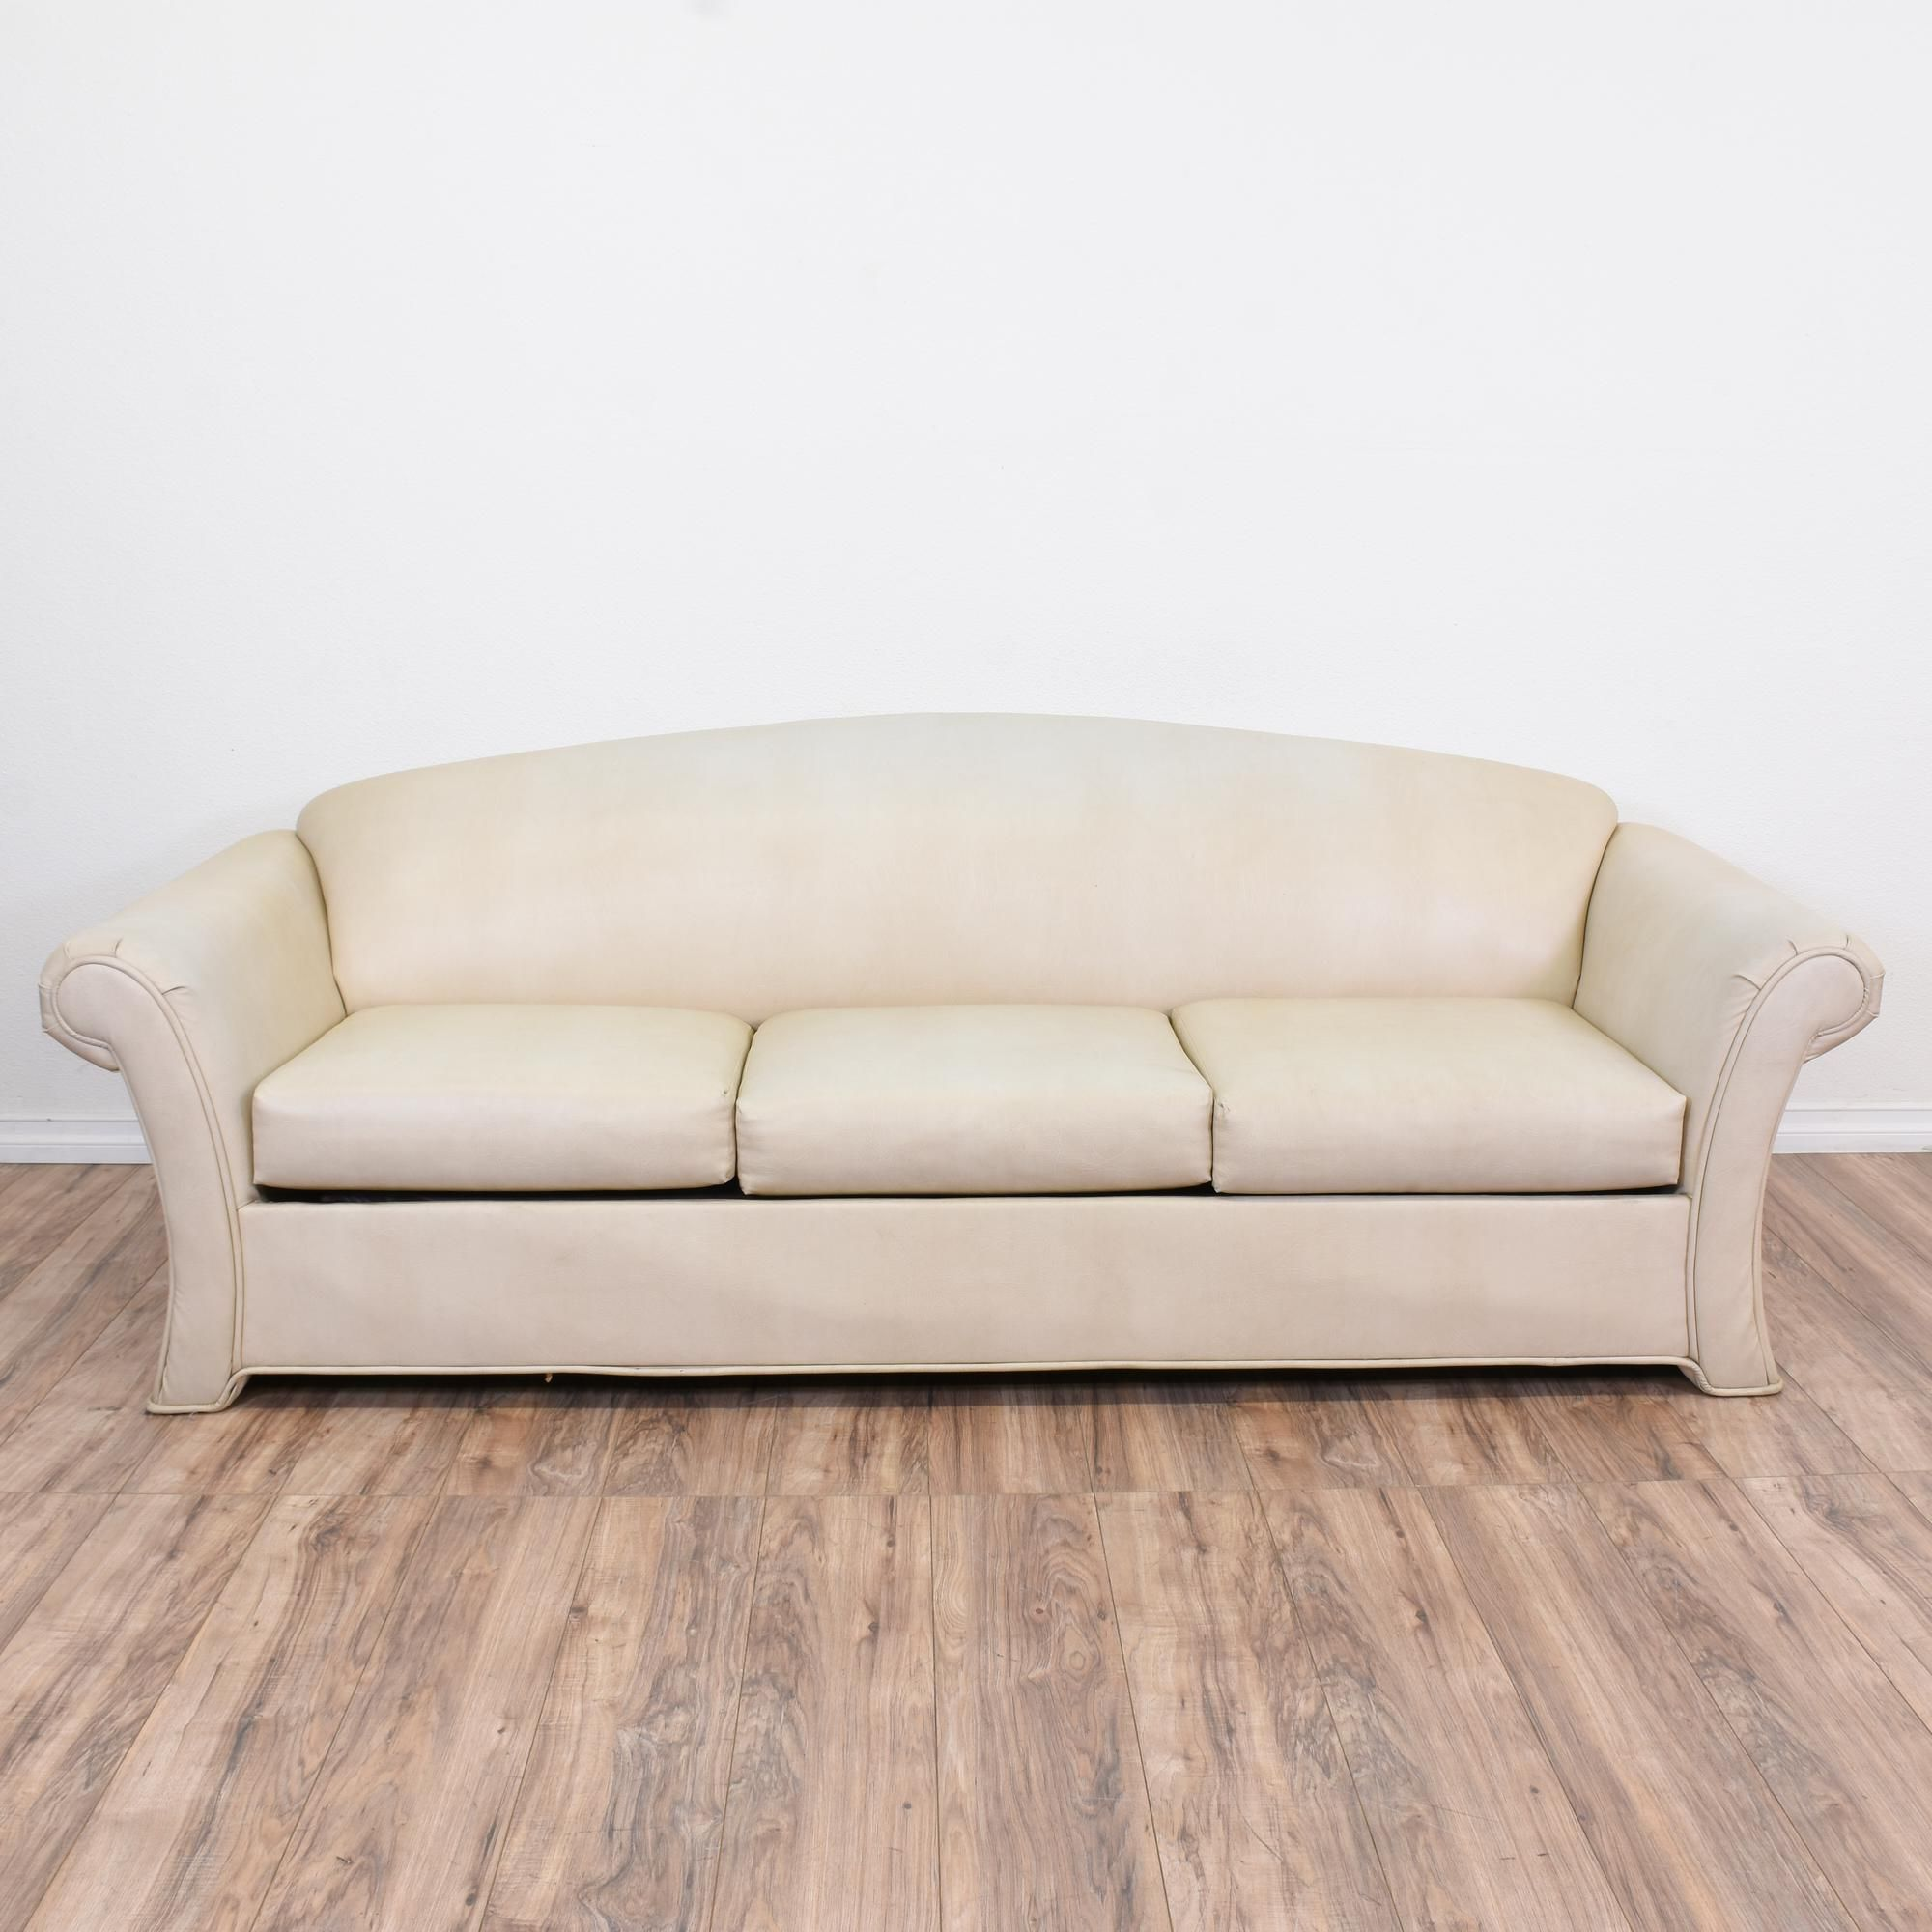 This sleeper sofa is upholstered in a durable off white vinyl